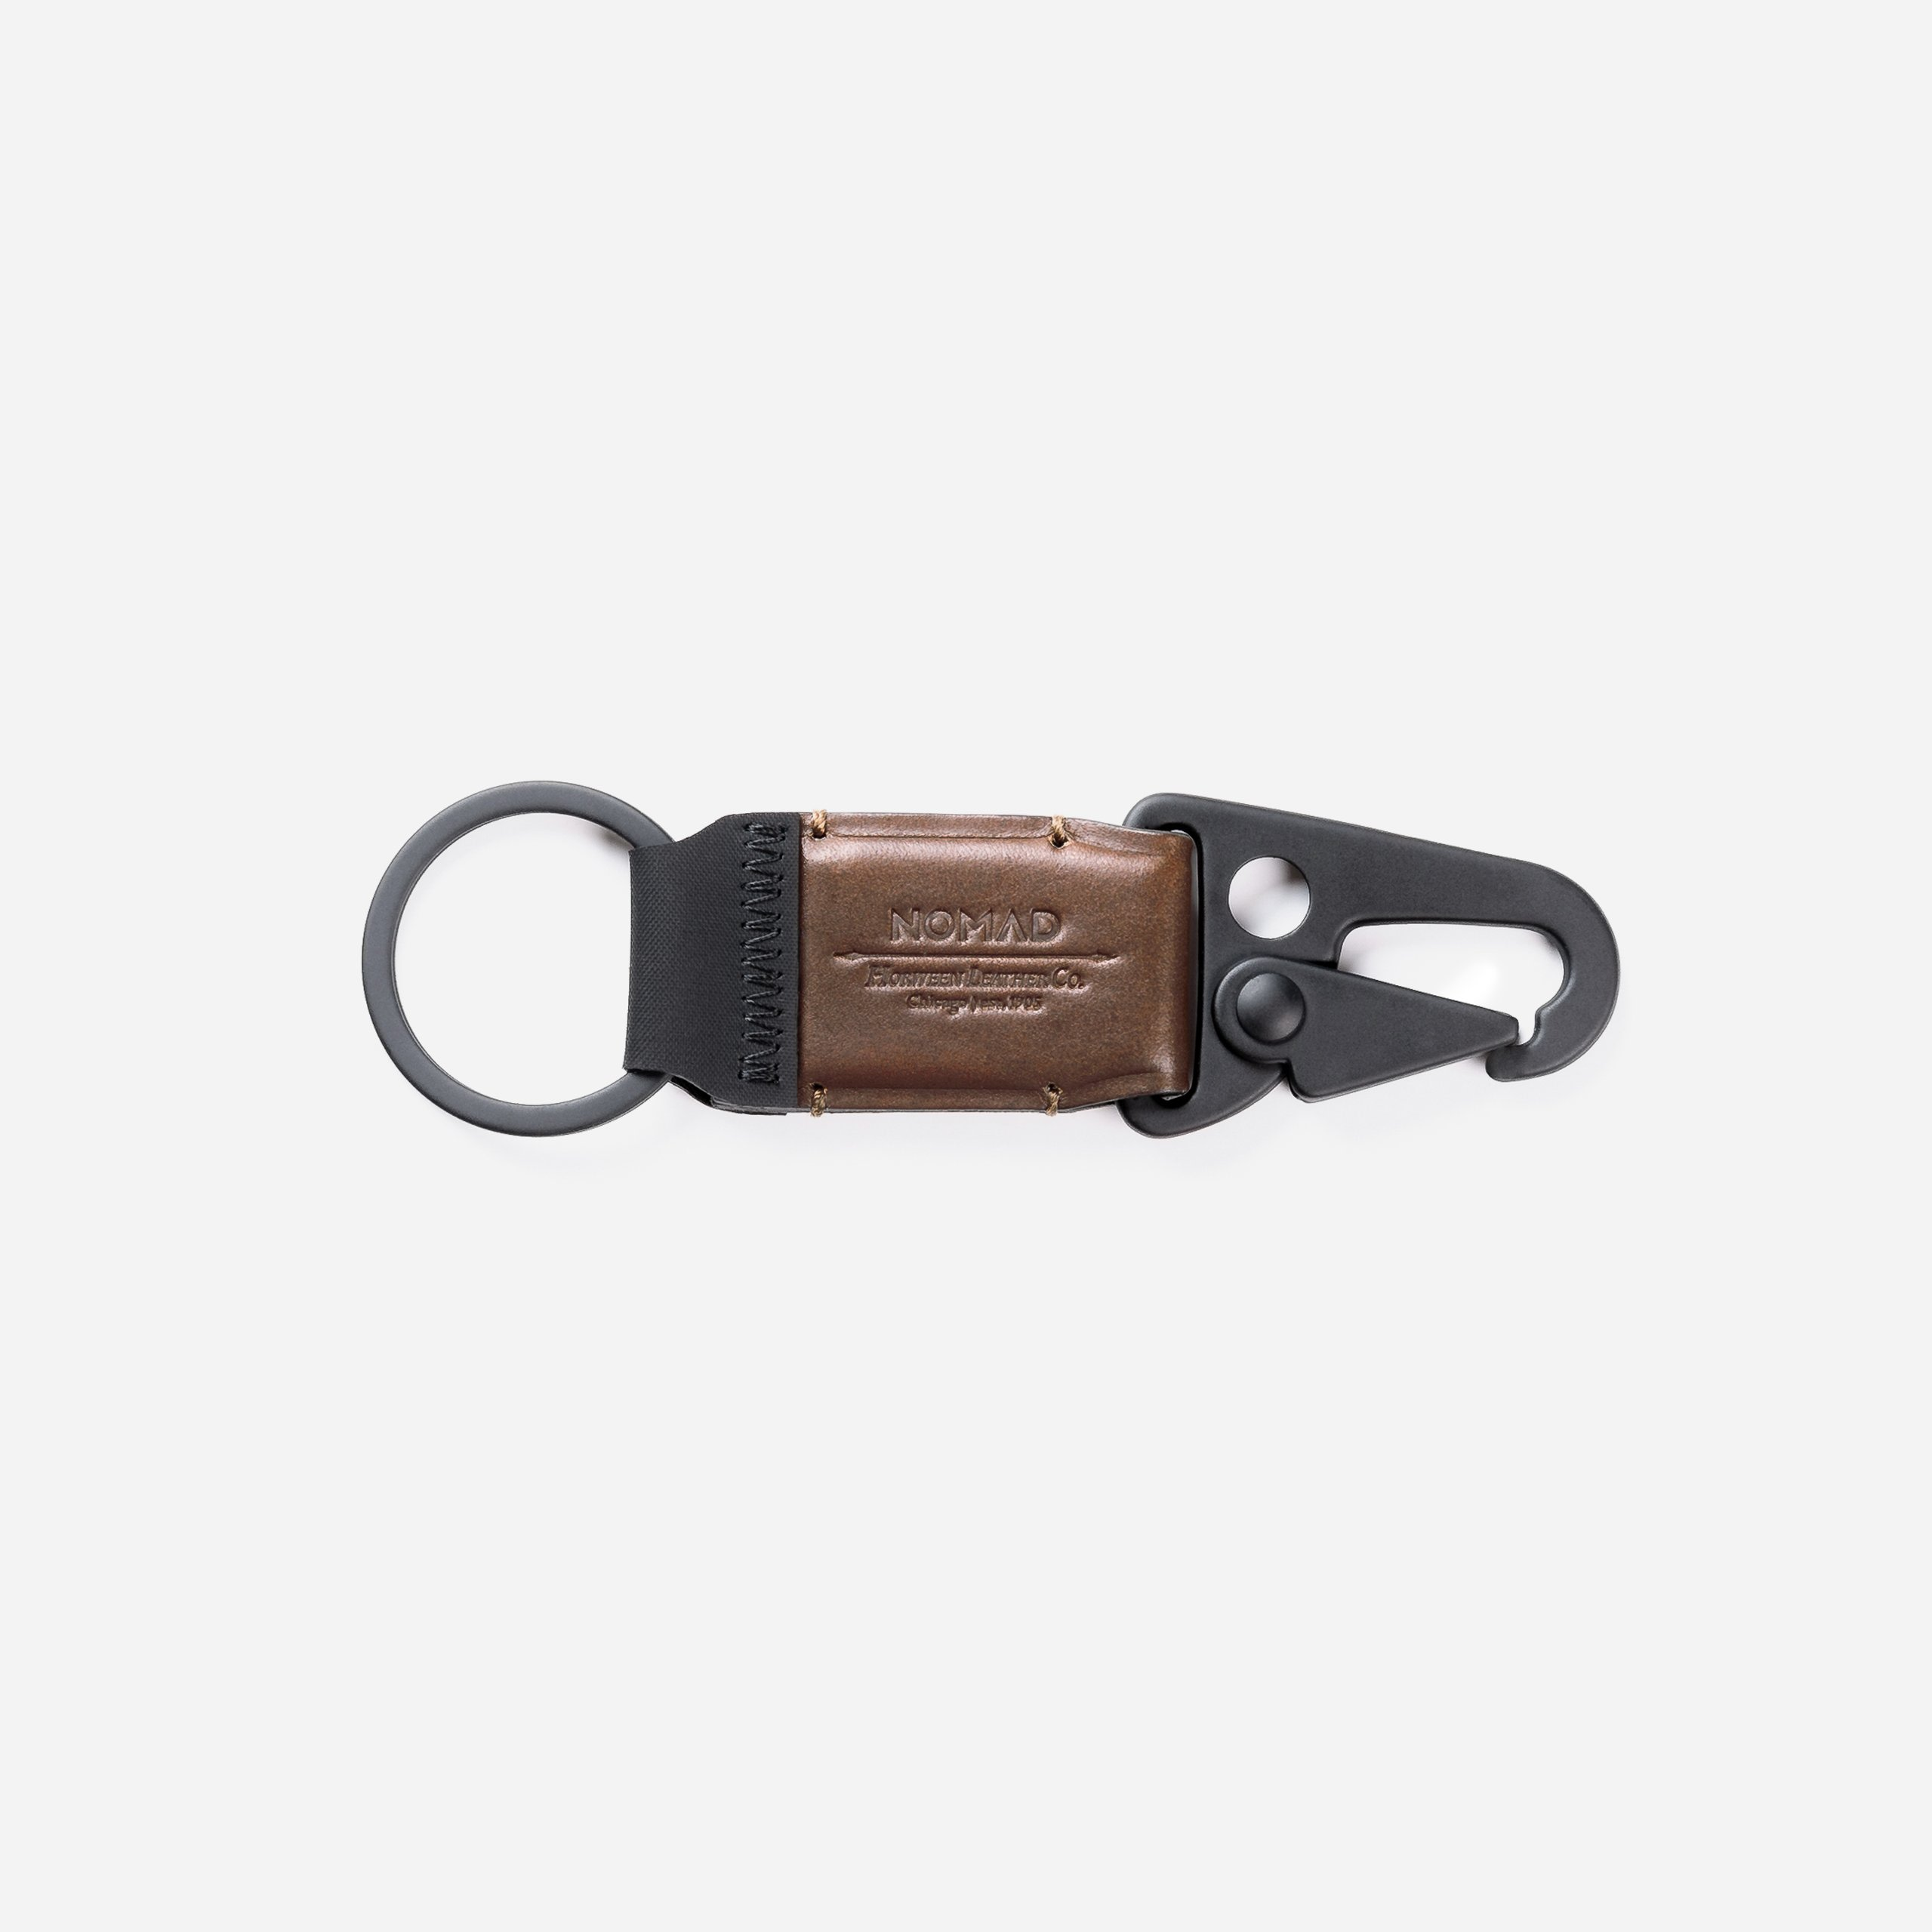 Leather Keychain Clip Side View